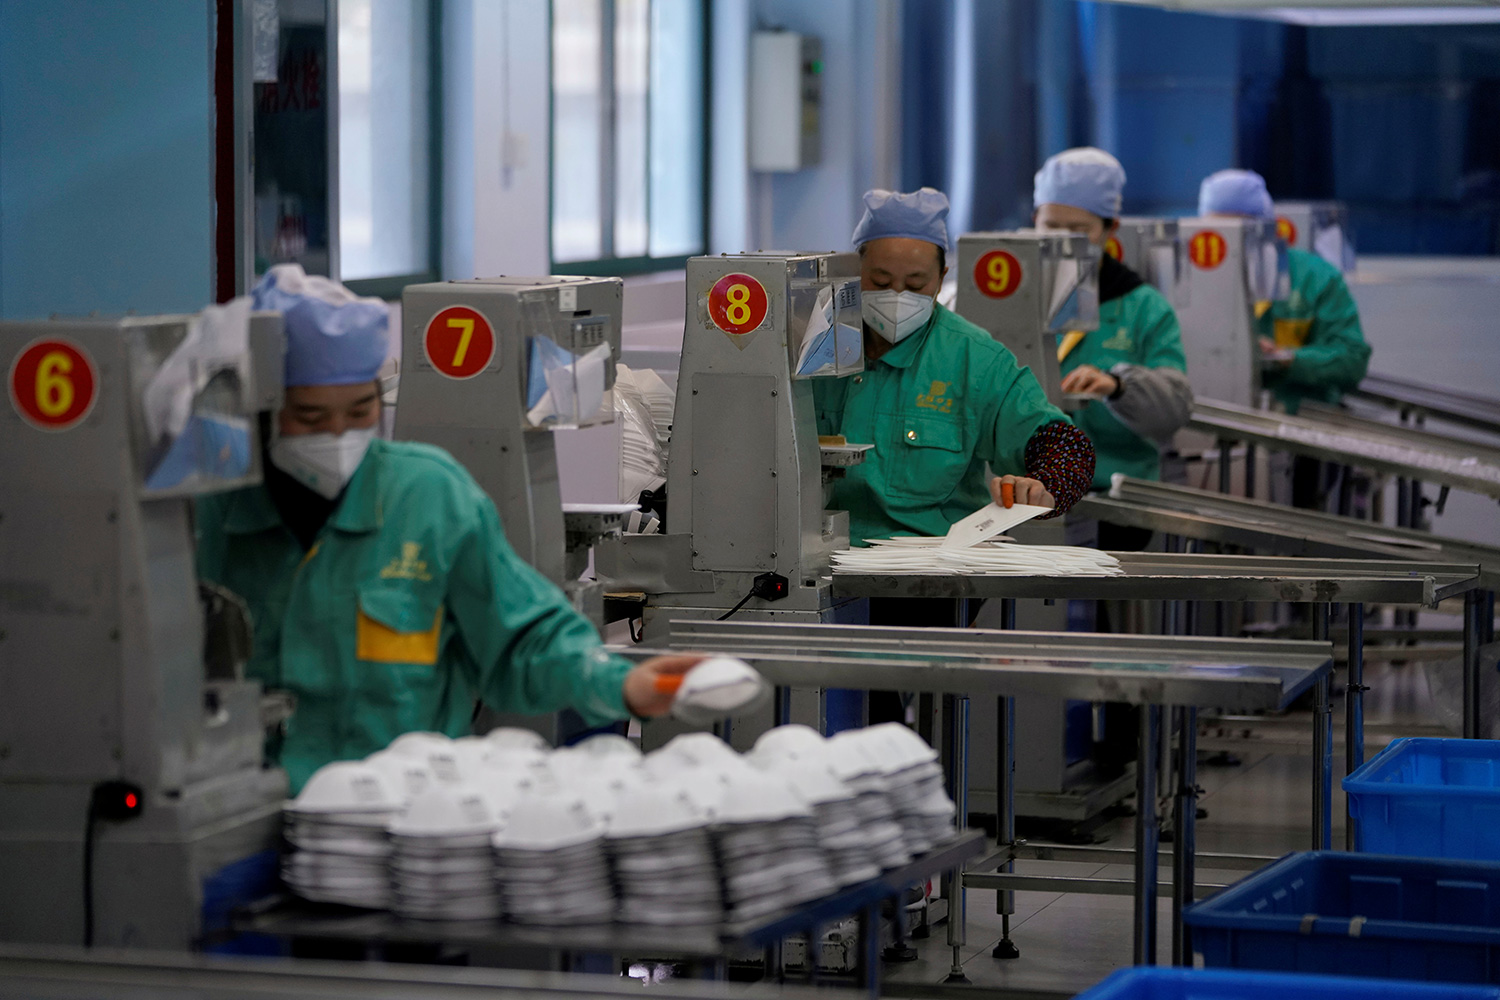 The photo shows a row of workers piling up masks as they roll off machinery. Each one is at a workstation numbered six through twelve.